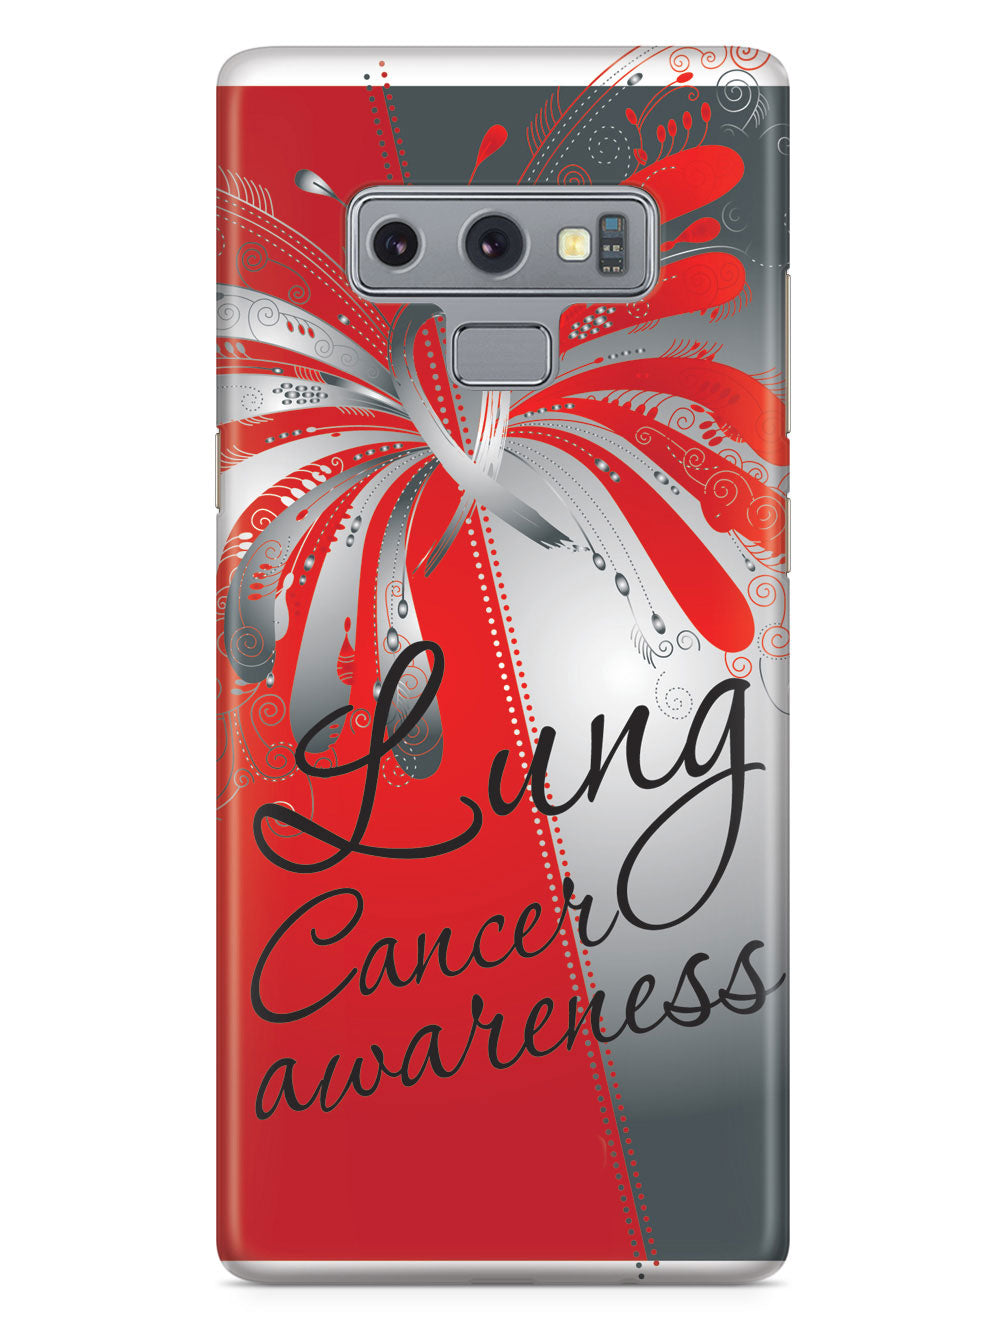 Lung Cancer Awareness Case